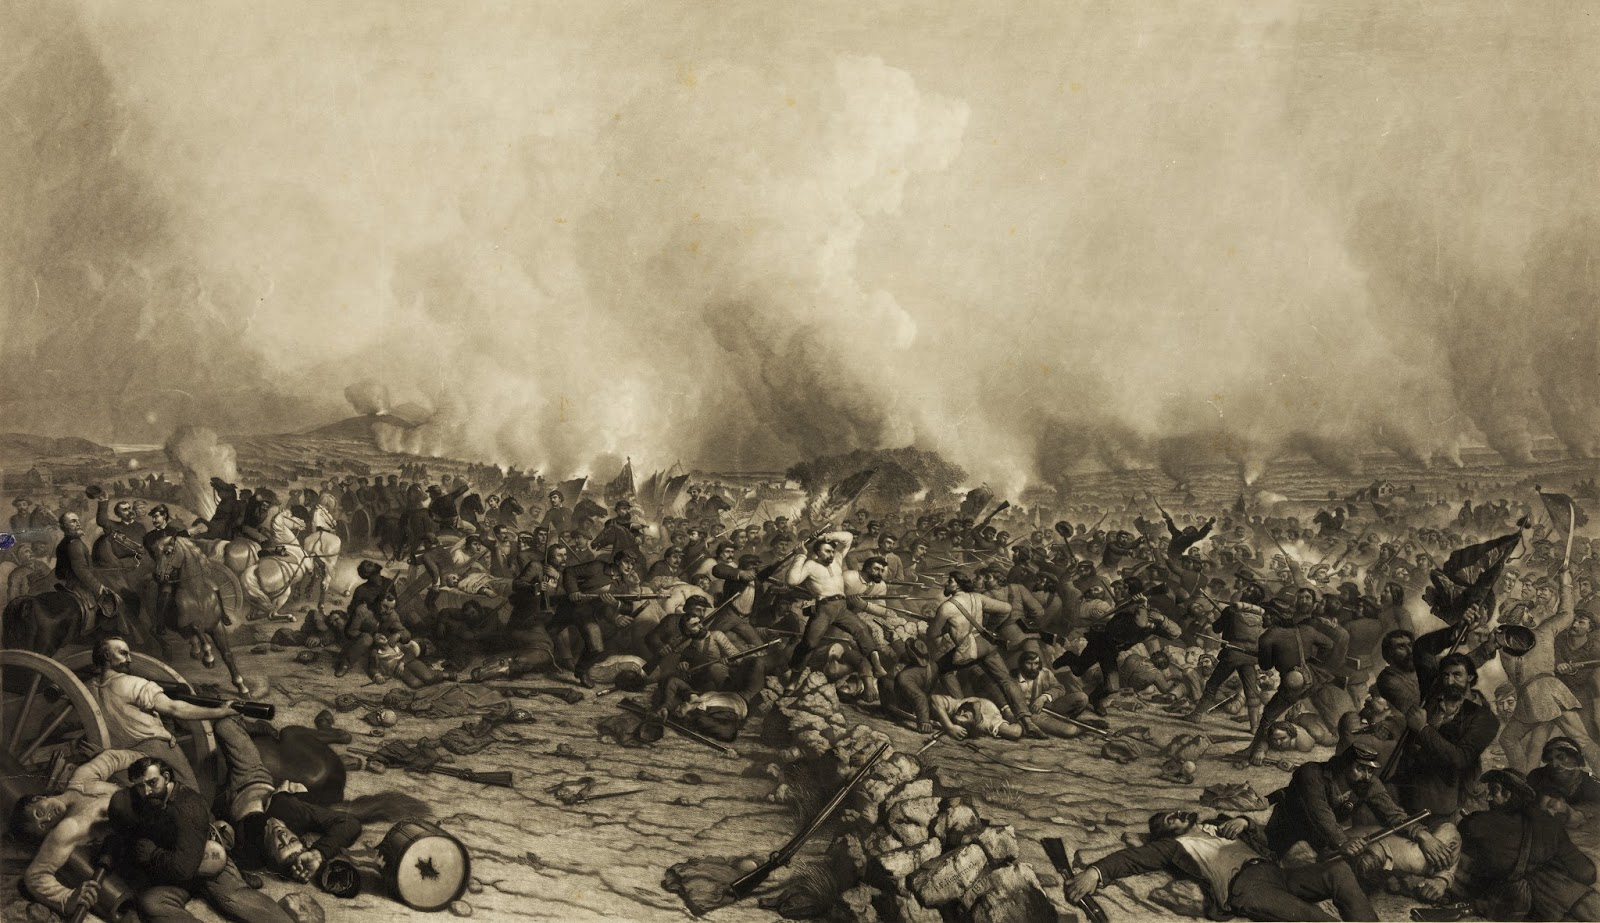 Essays on Battle of gettysburg